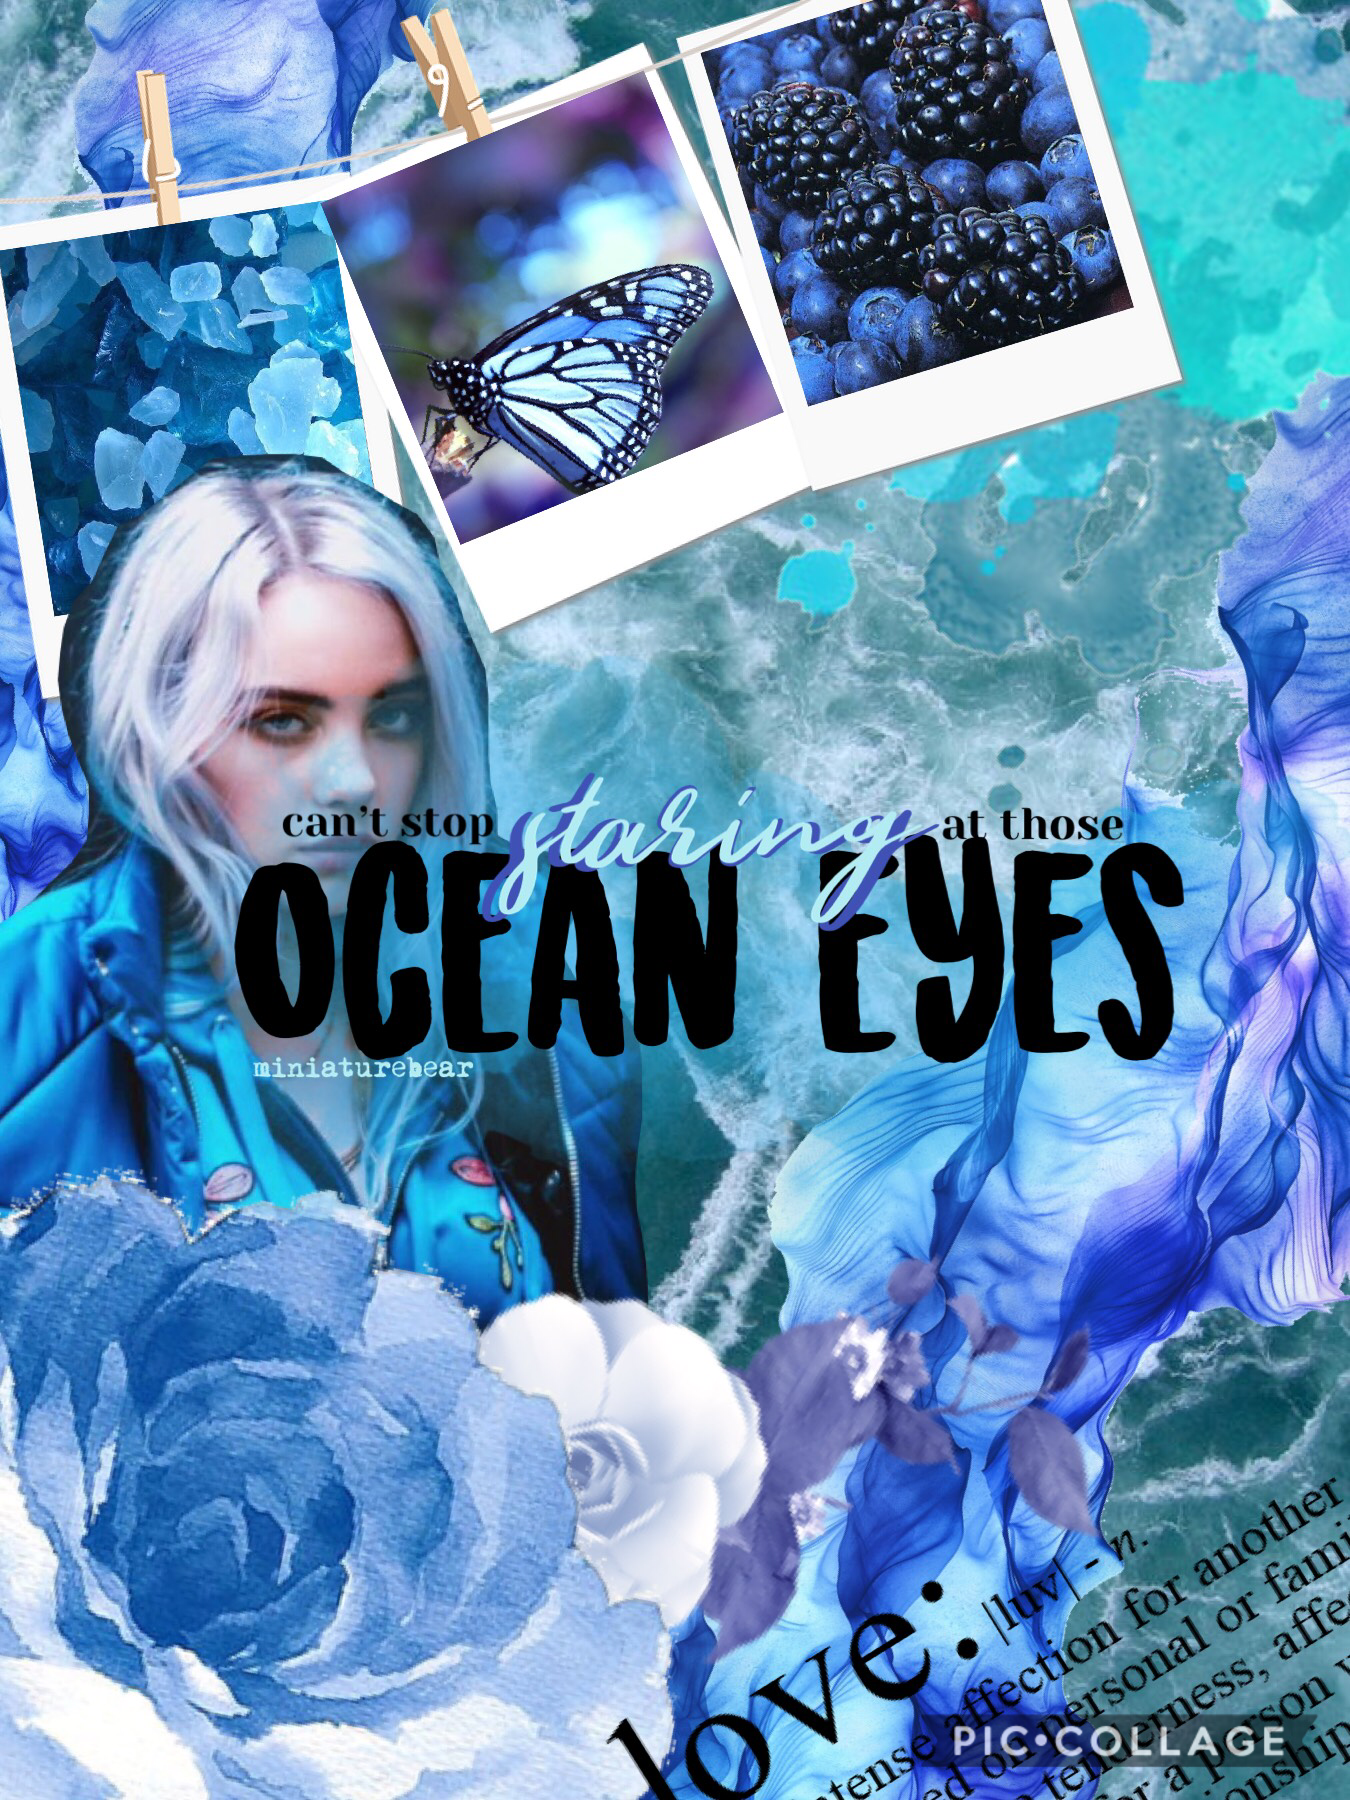 "From ""Ocean Eyes"" by Billie Eilish. Hey guys! I know its been a while since I've posted. School has been stressful lately. But I'm trying this new style of collages. Lmk what you think about it!"